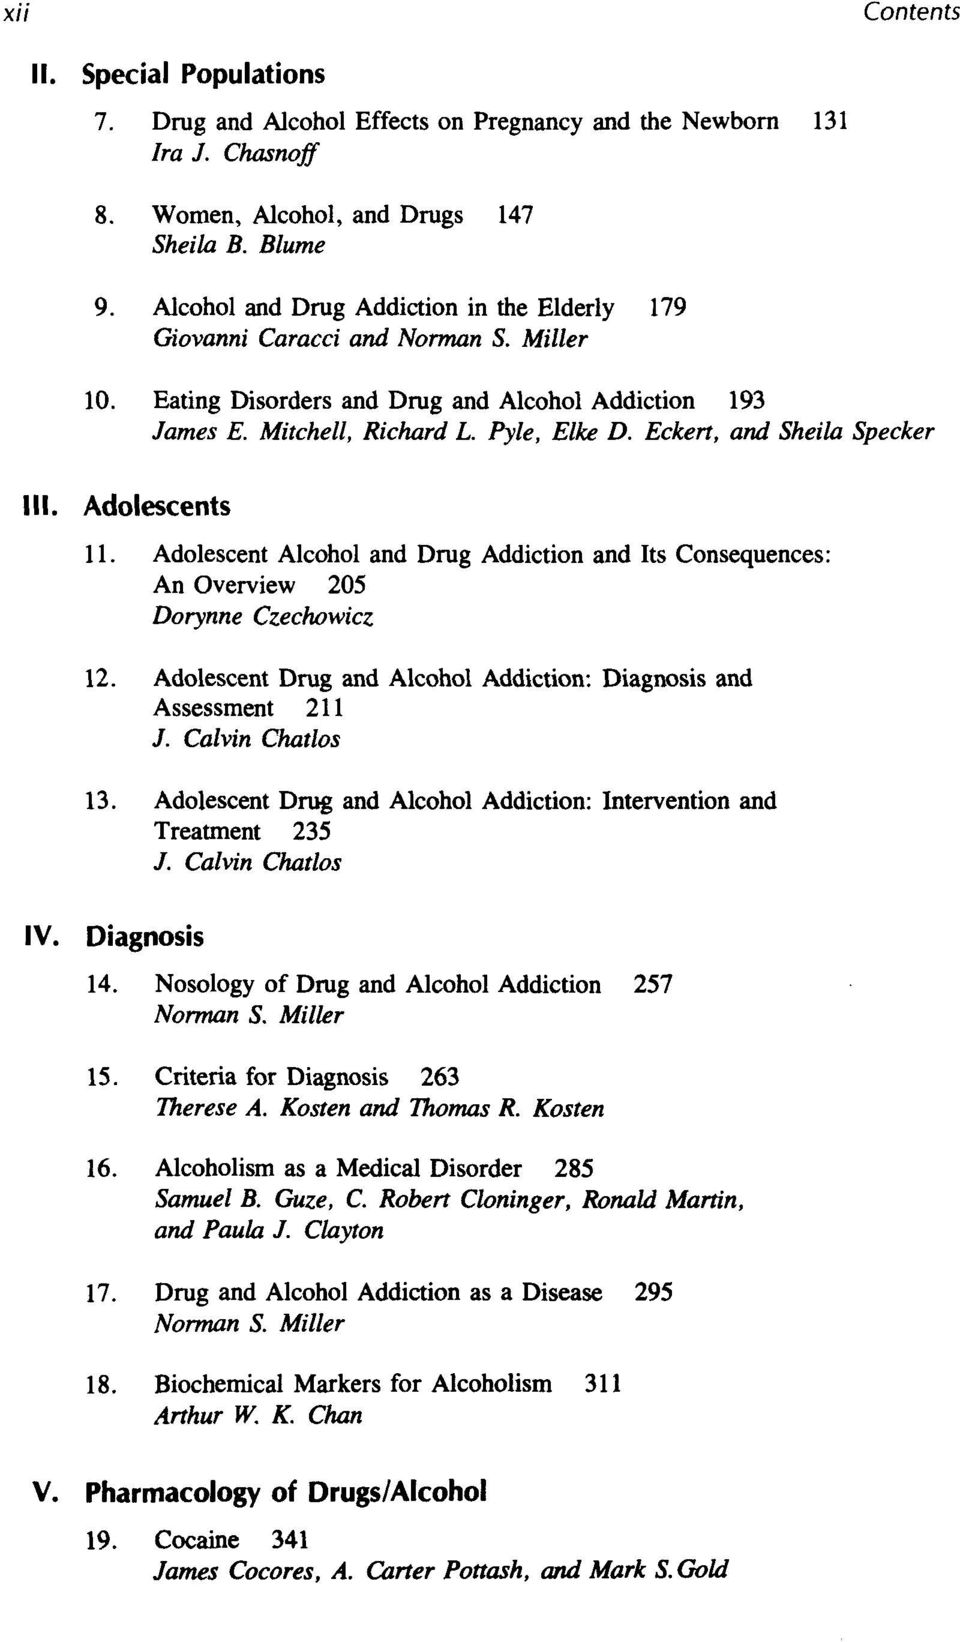 Adolescents 11. Adolescent Alcohol and Drug Addiction and Its Consequences: An Overview 205 Dorynne Czechowicz 12. Adolescent Drug and Alcohol Addiction: Diagnosis and Assessment 211 /.